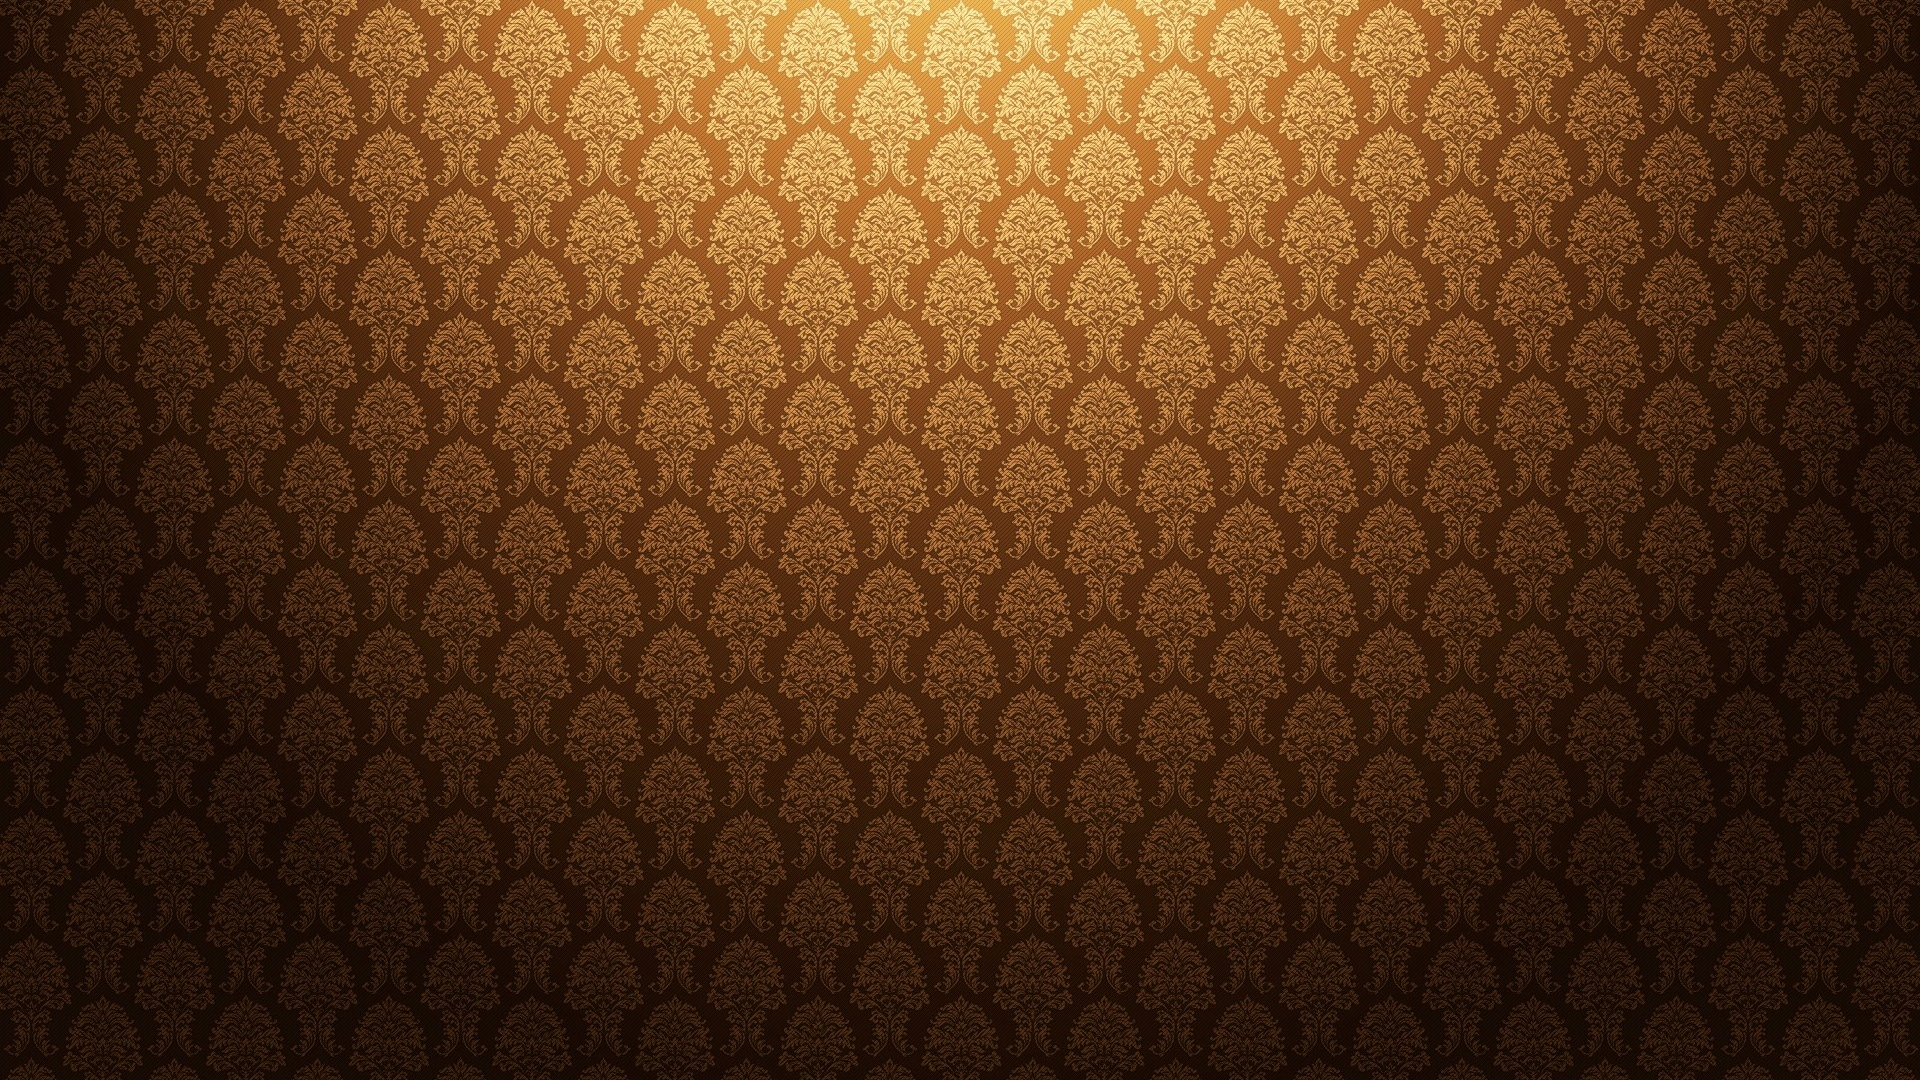 Retro Wallpaper Images